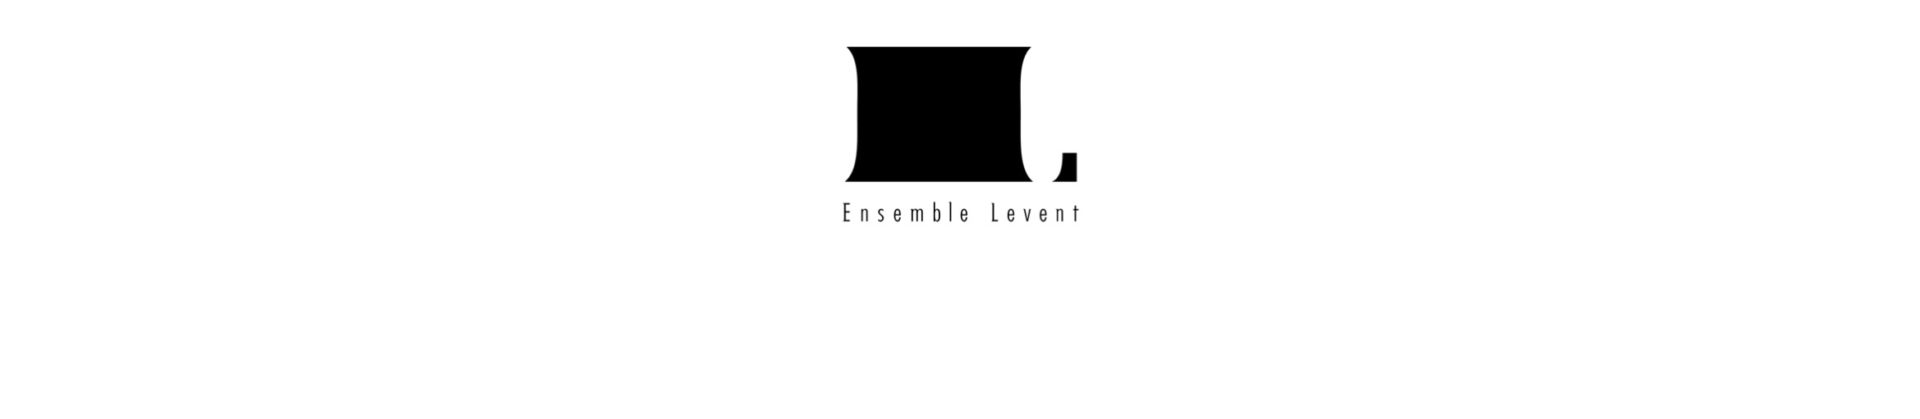 Ensemble Levent